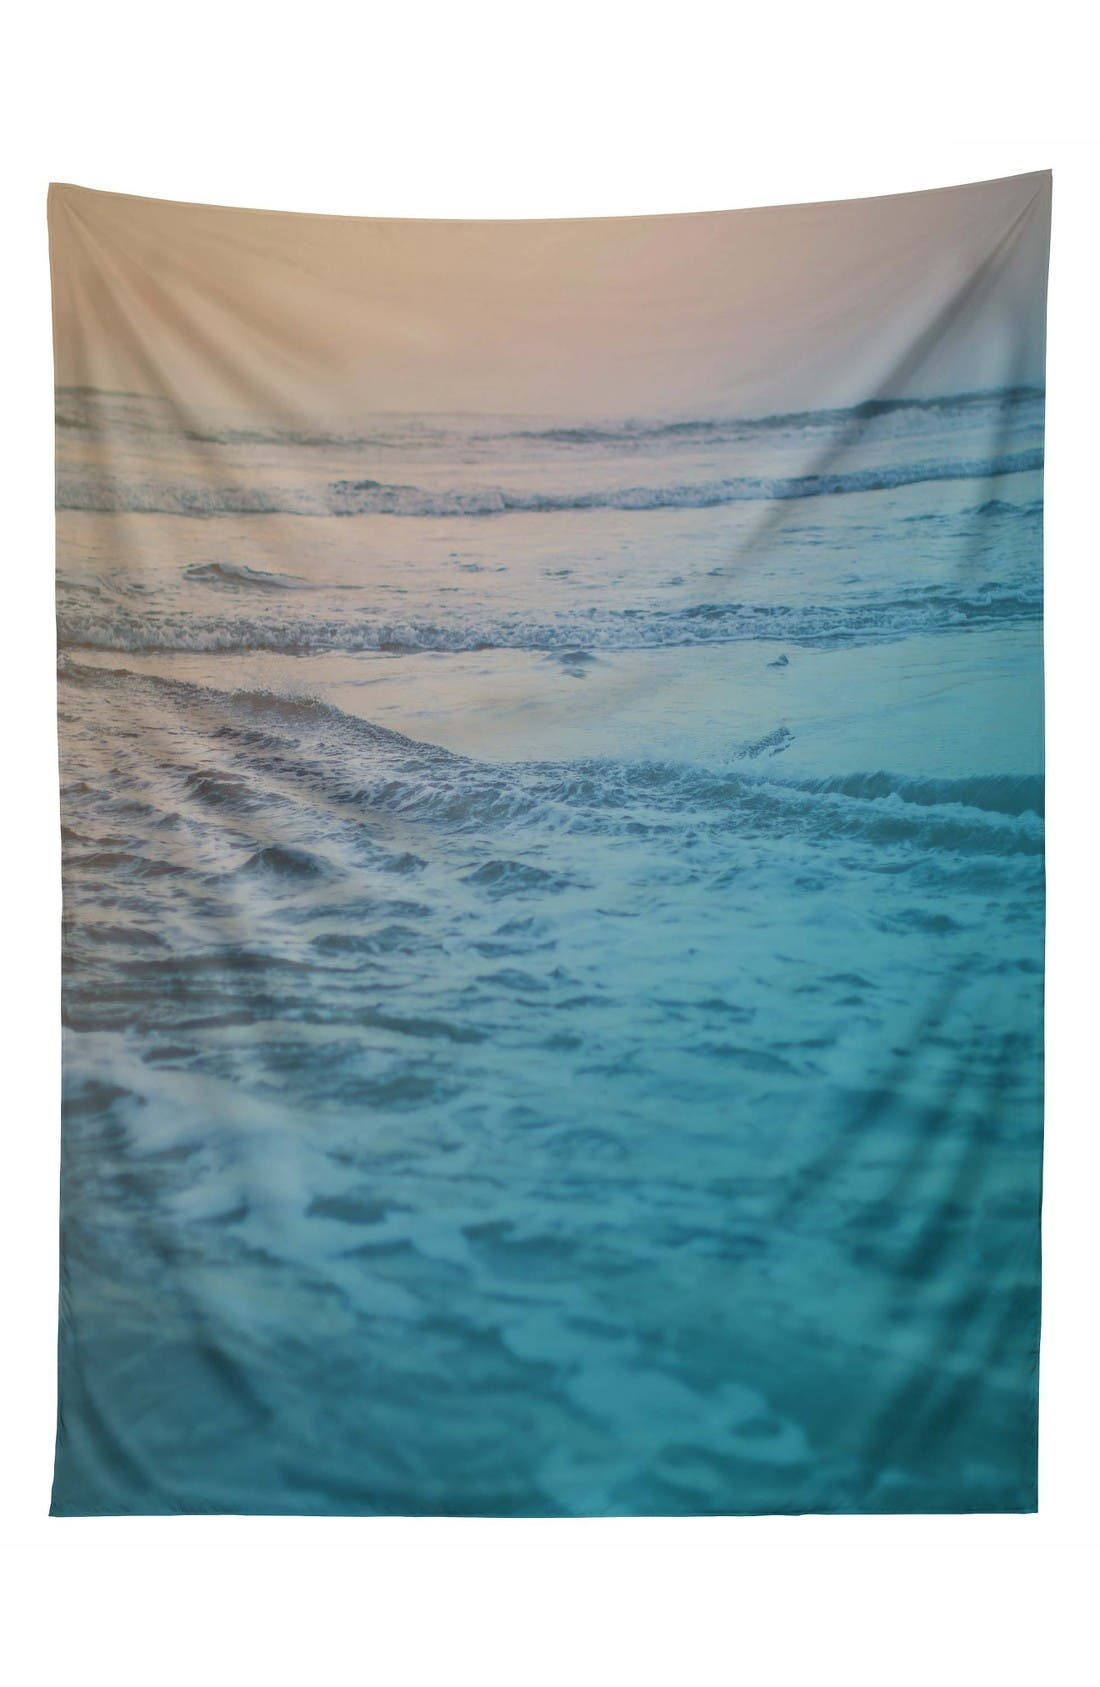 Alternate Image 1 Selected - Deny Designs Cotton Candy Waves Tapestry